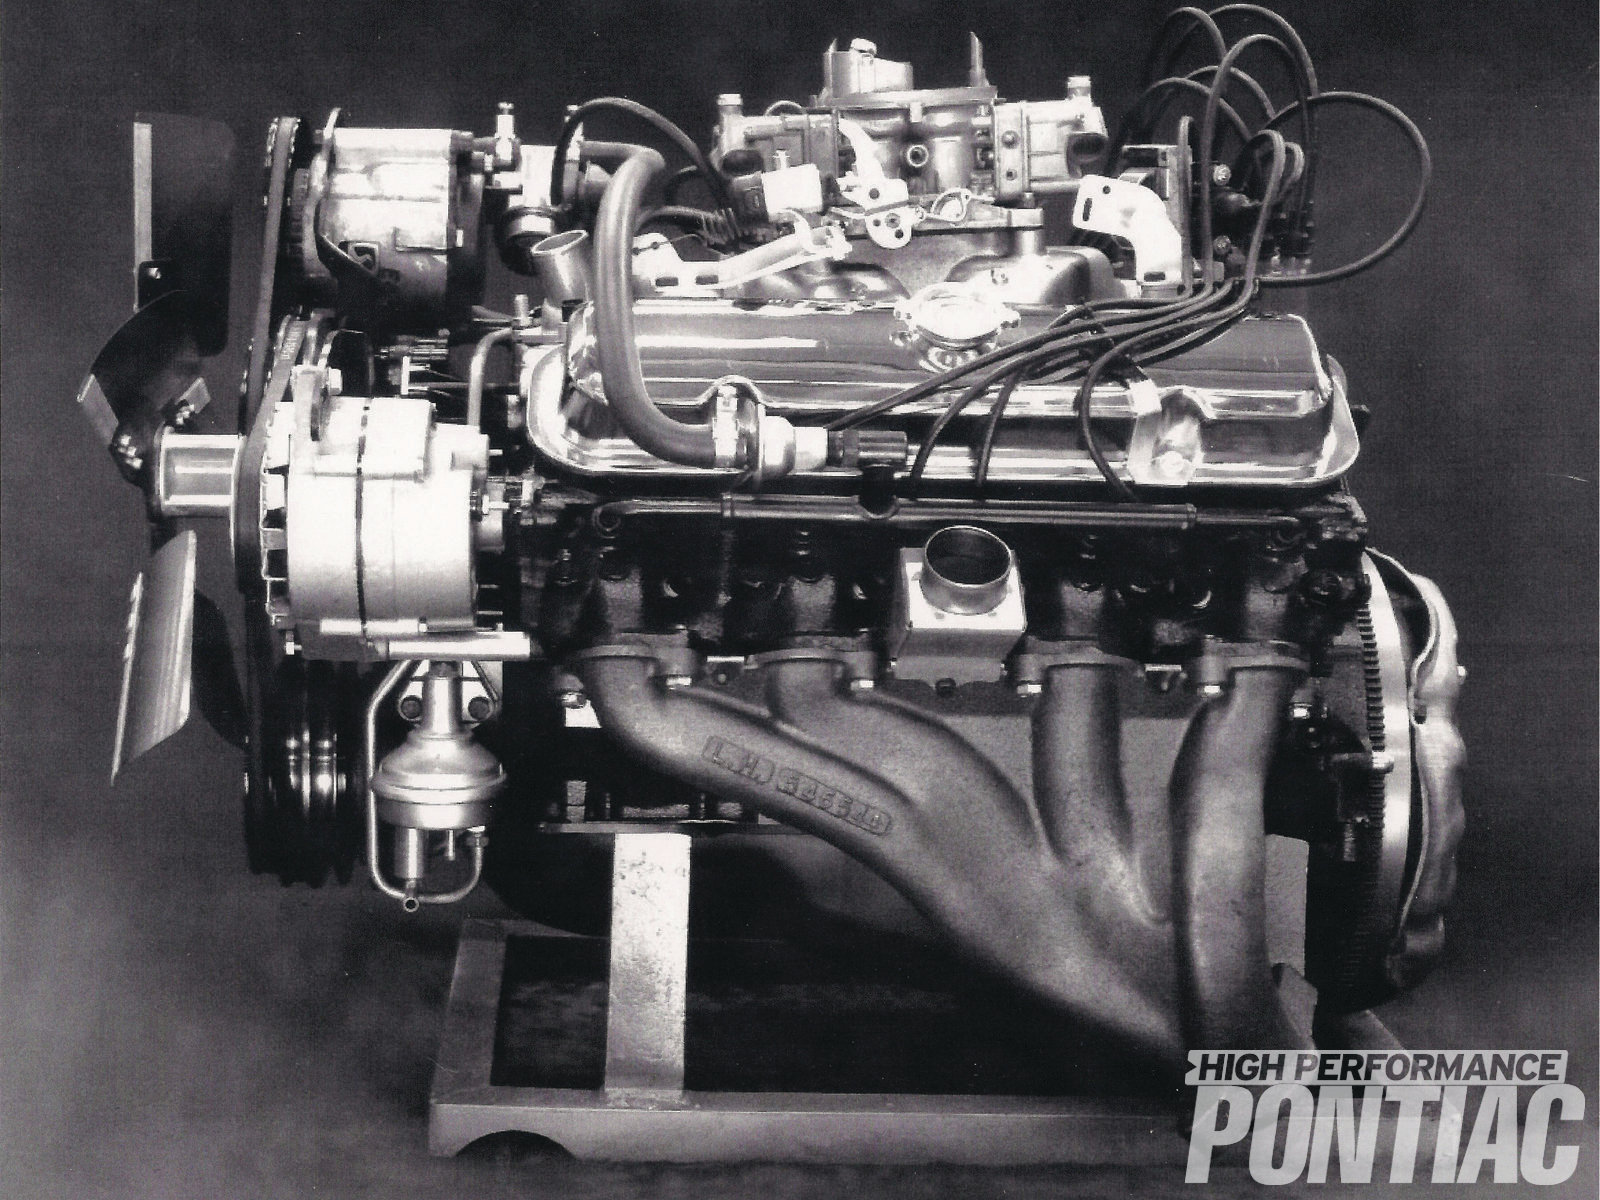 This vintage Pontiac publicity photo shows a dressed-out tunnel-port 303. The photo was likely arranged to show SCCA officials that the Pontiac 303 was a production engine.